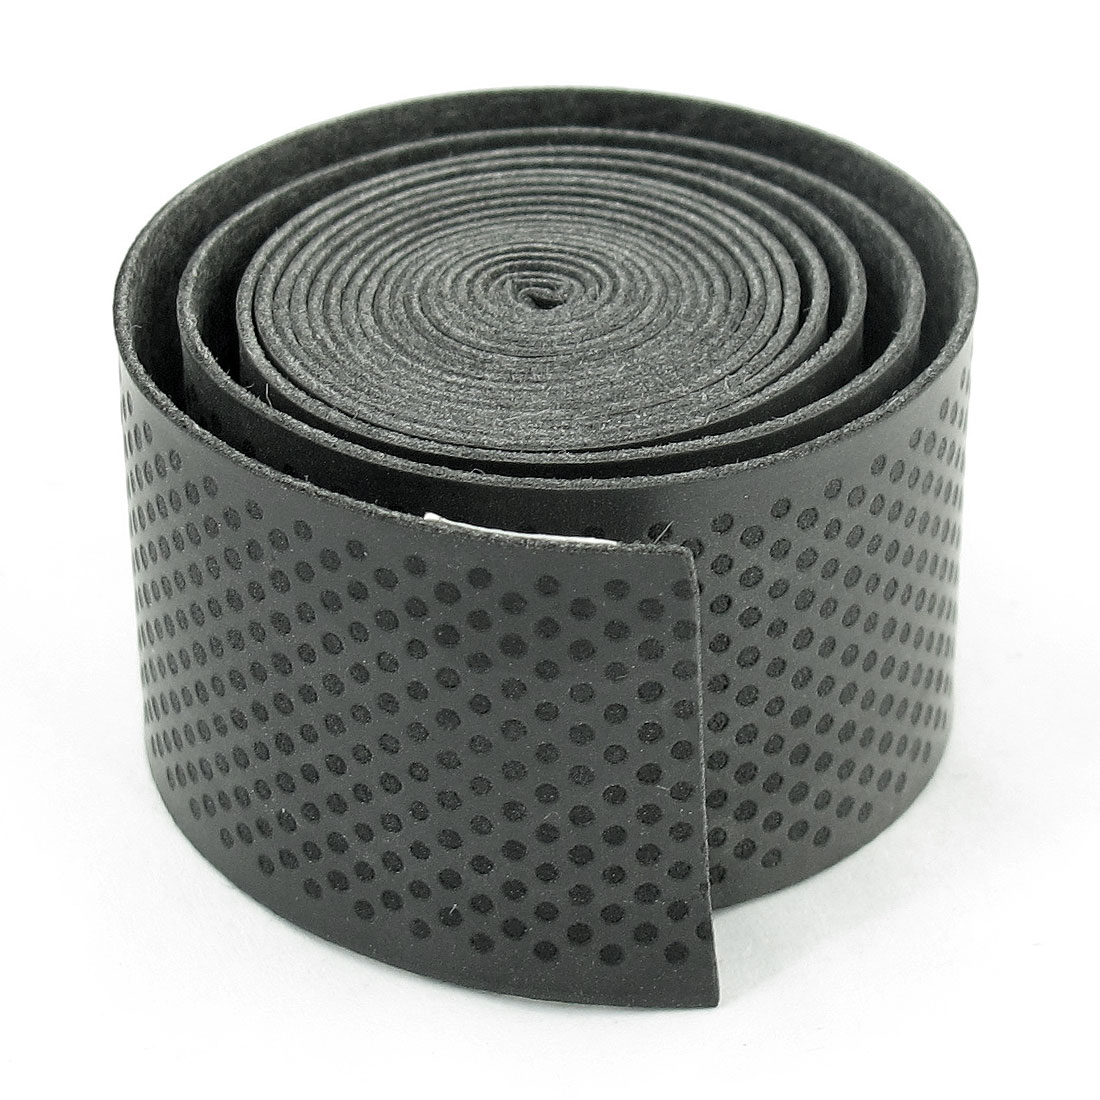 Fish Rod Tennis Racket Absorb Sweat Absorption Handle Grip Wrap Tape Dark Gray